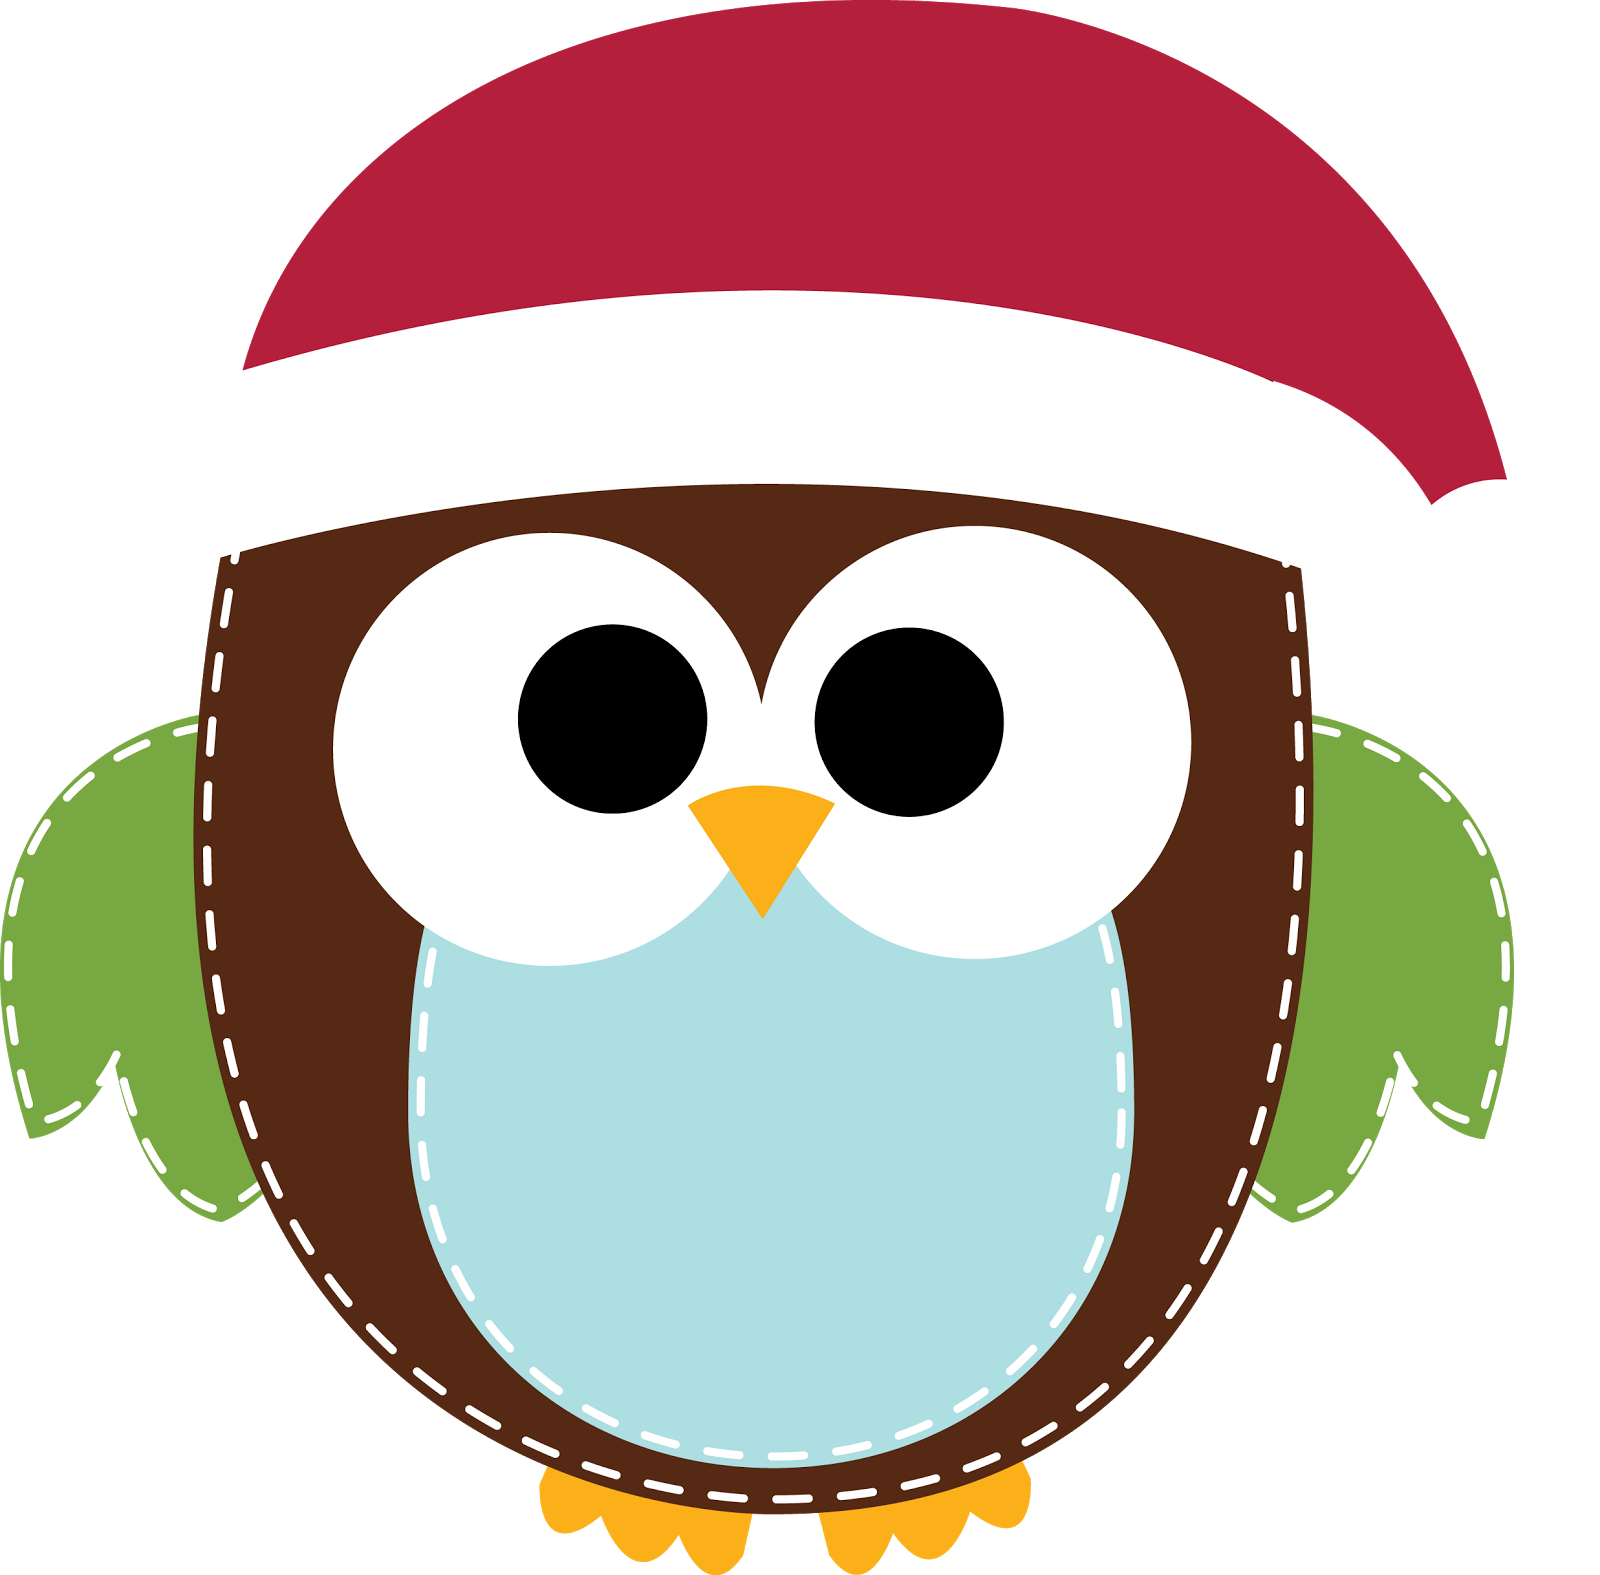 Owl beach cat clipart graphic freeuse Free Merry Christmas Clip Art | Clipart Panda - Free Clipart Images graphic freeuse